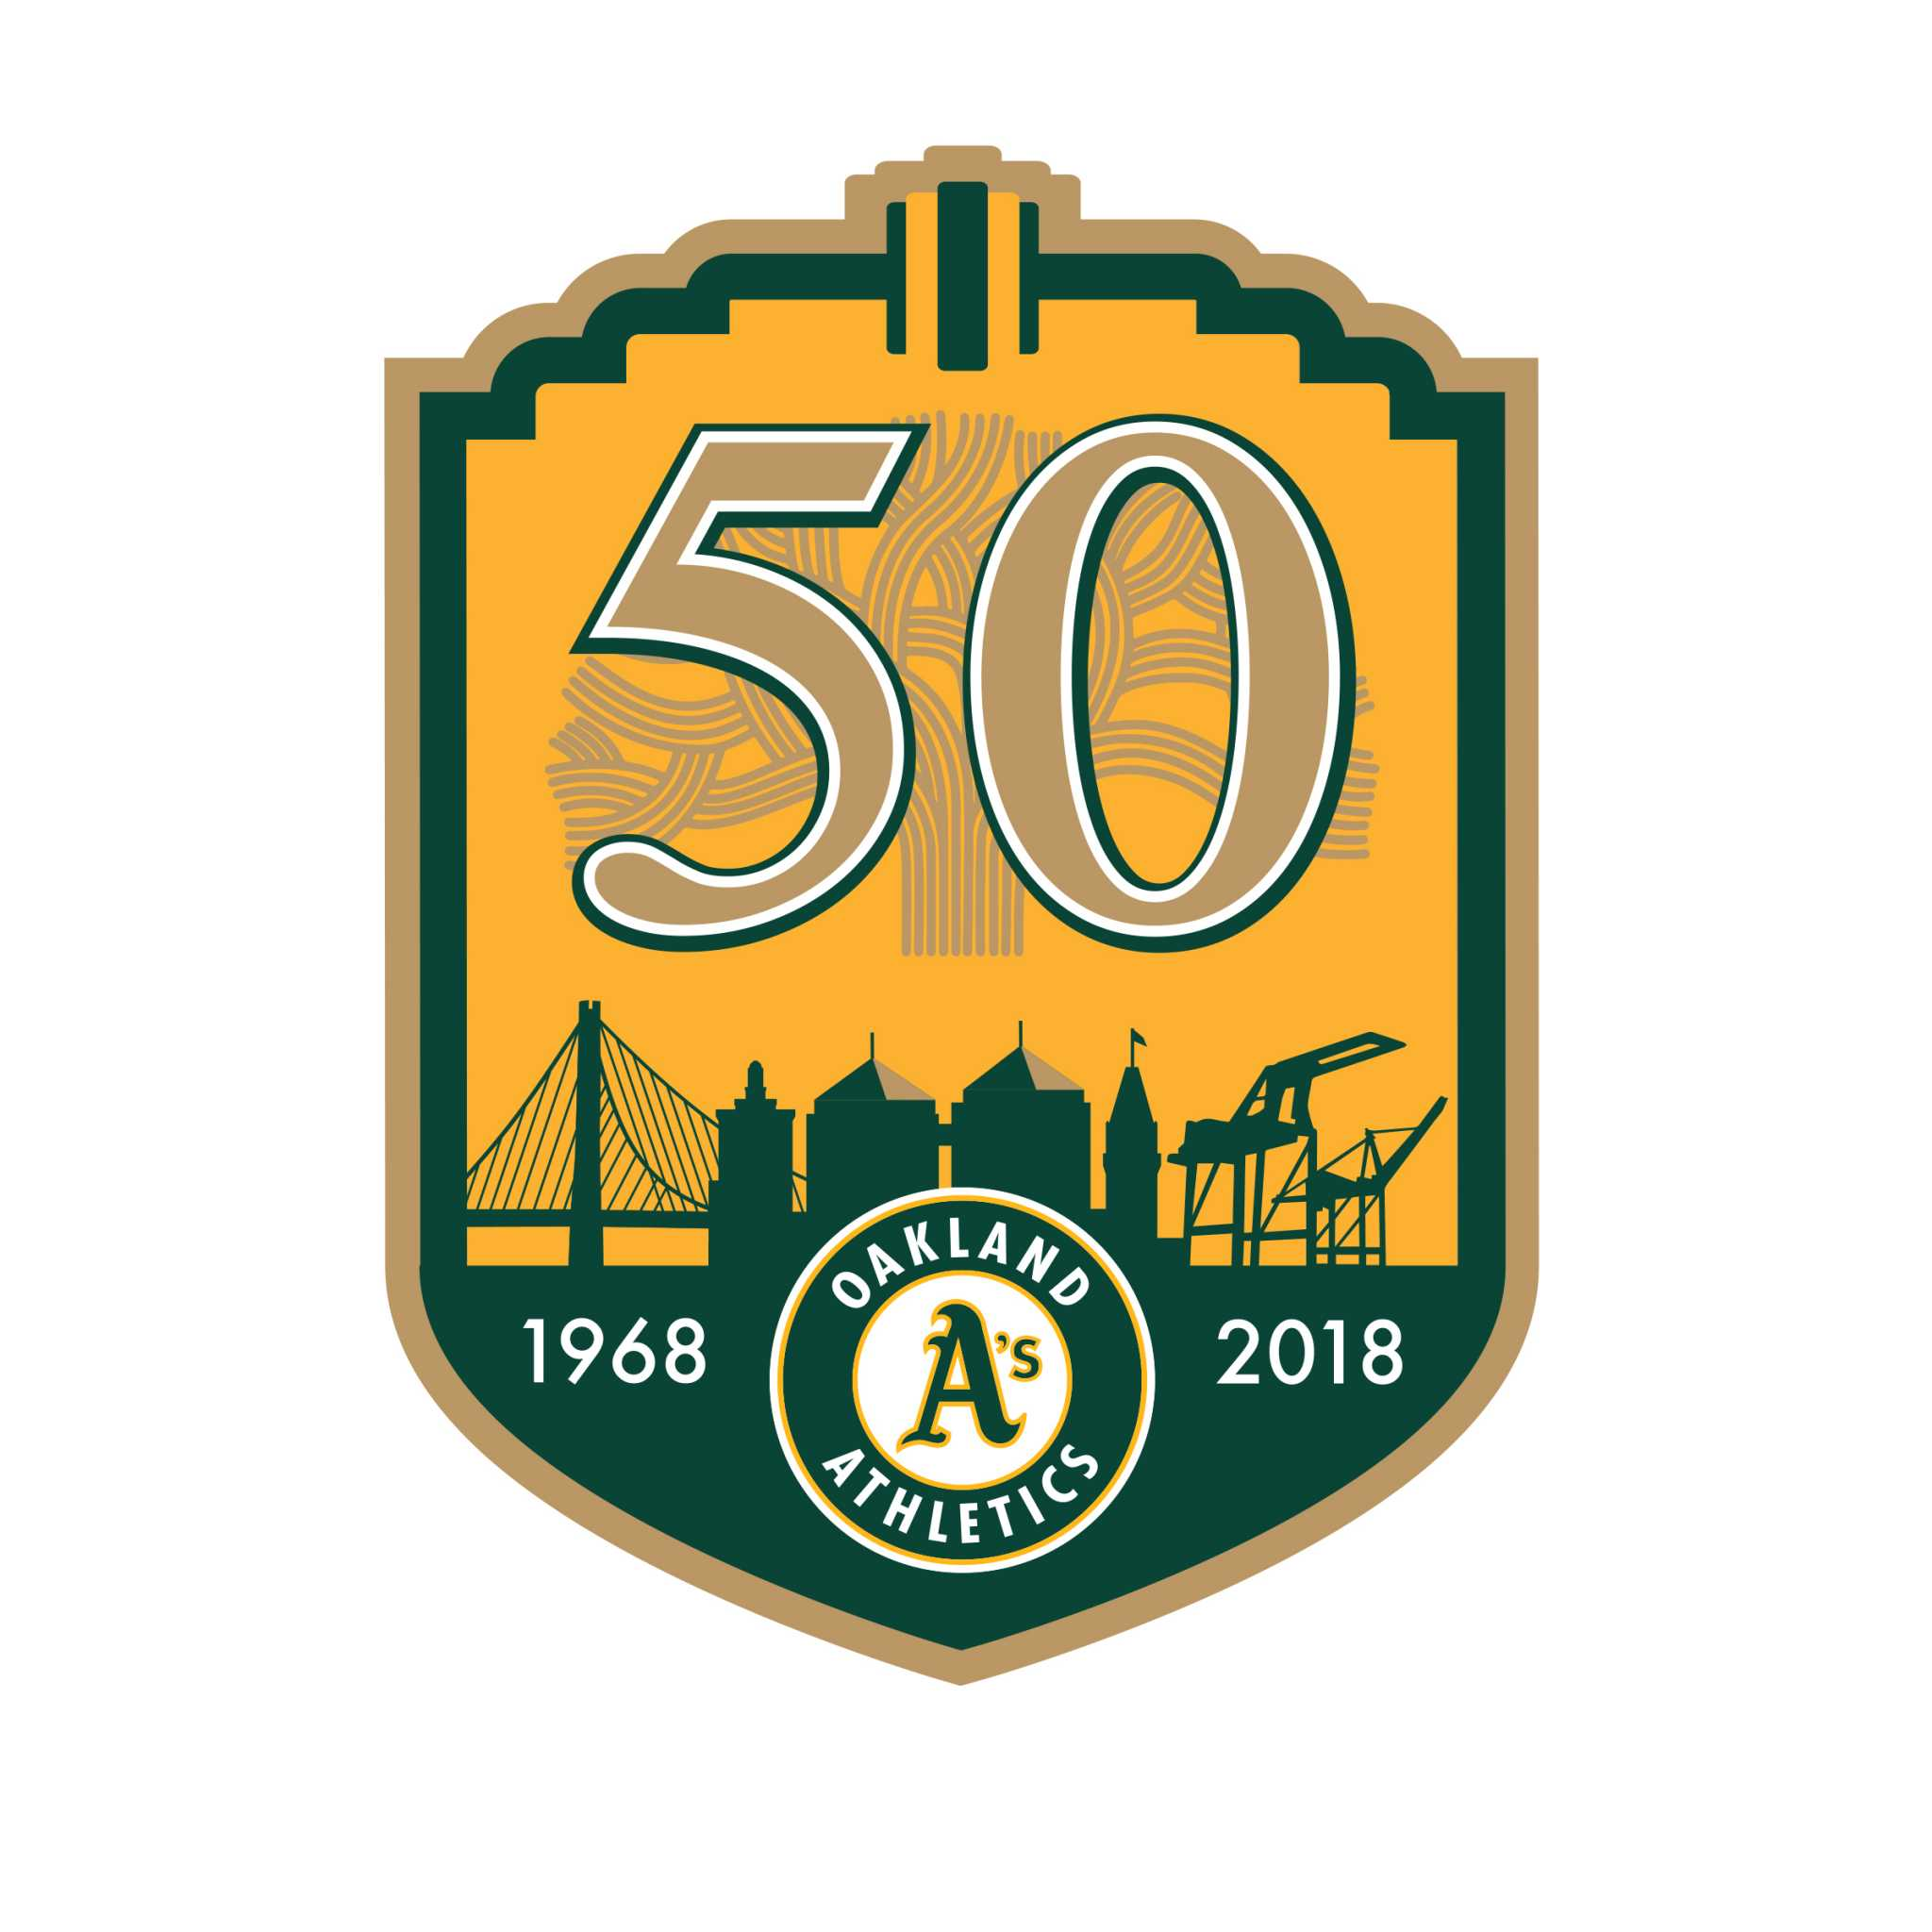 Oakland-As-50th-anniversary-logo